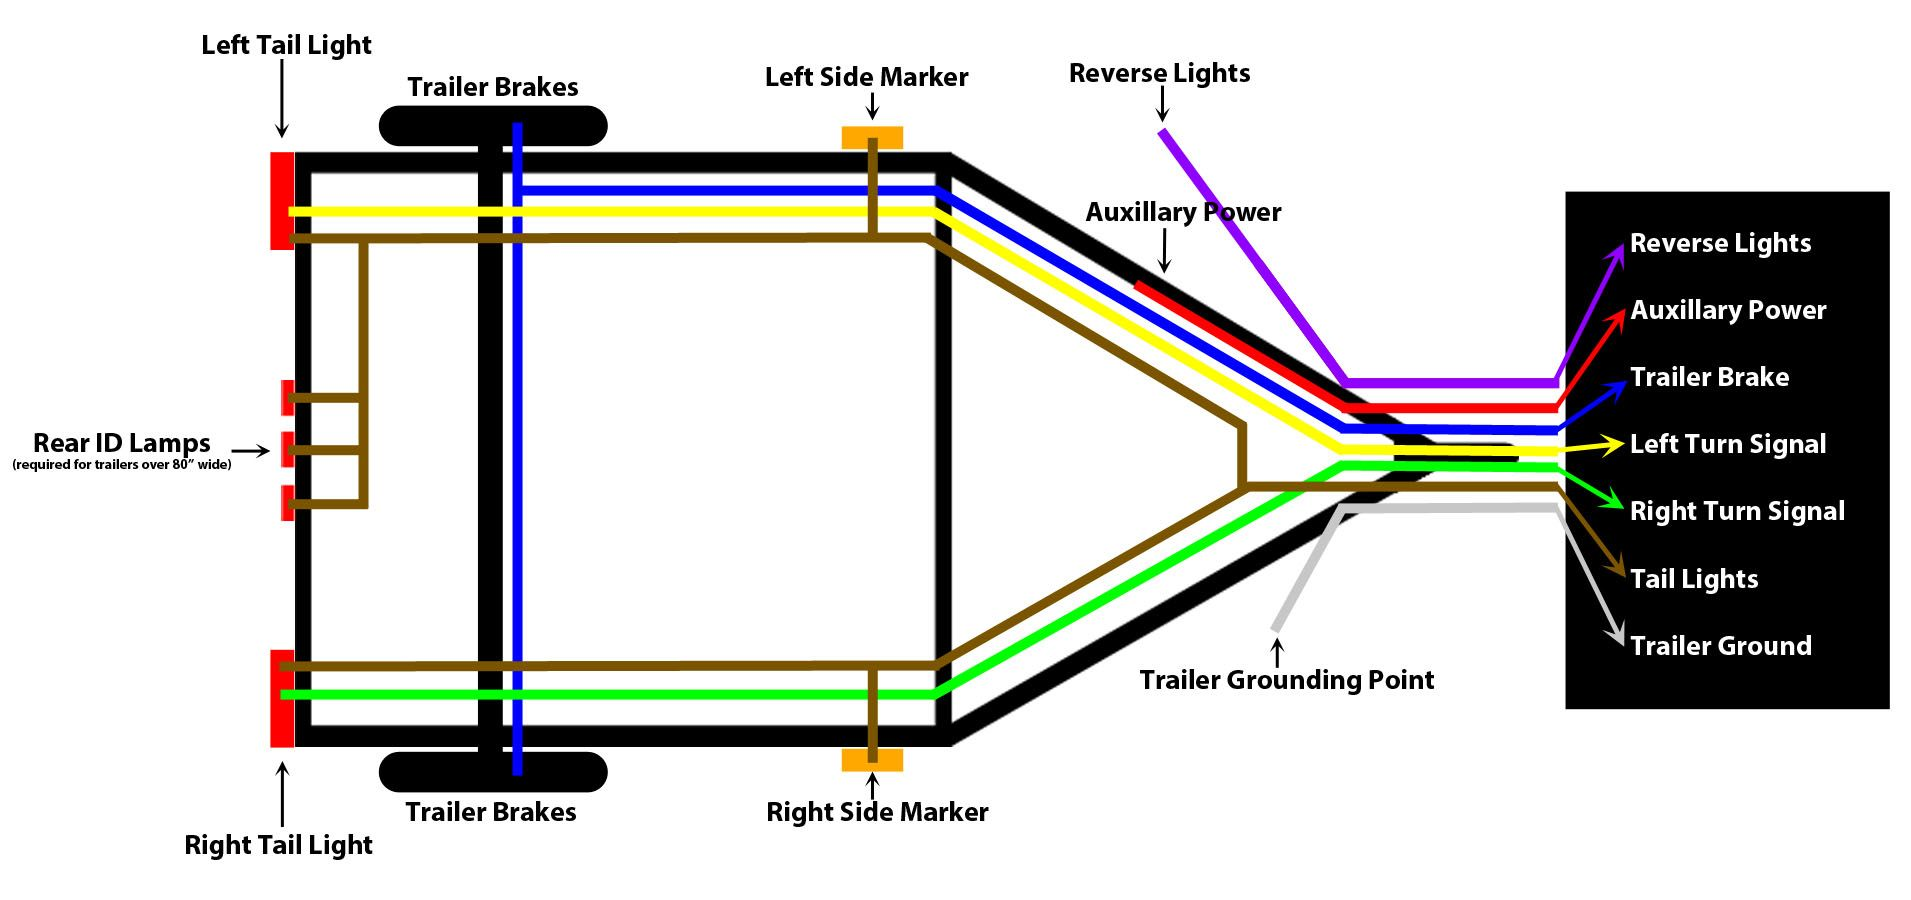 Trailer Lighting Wiring Diagram : Trailer wiring diagram g auto repair pinterest